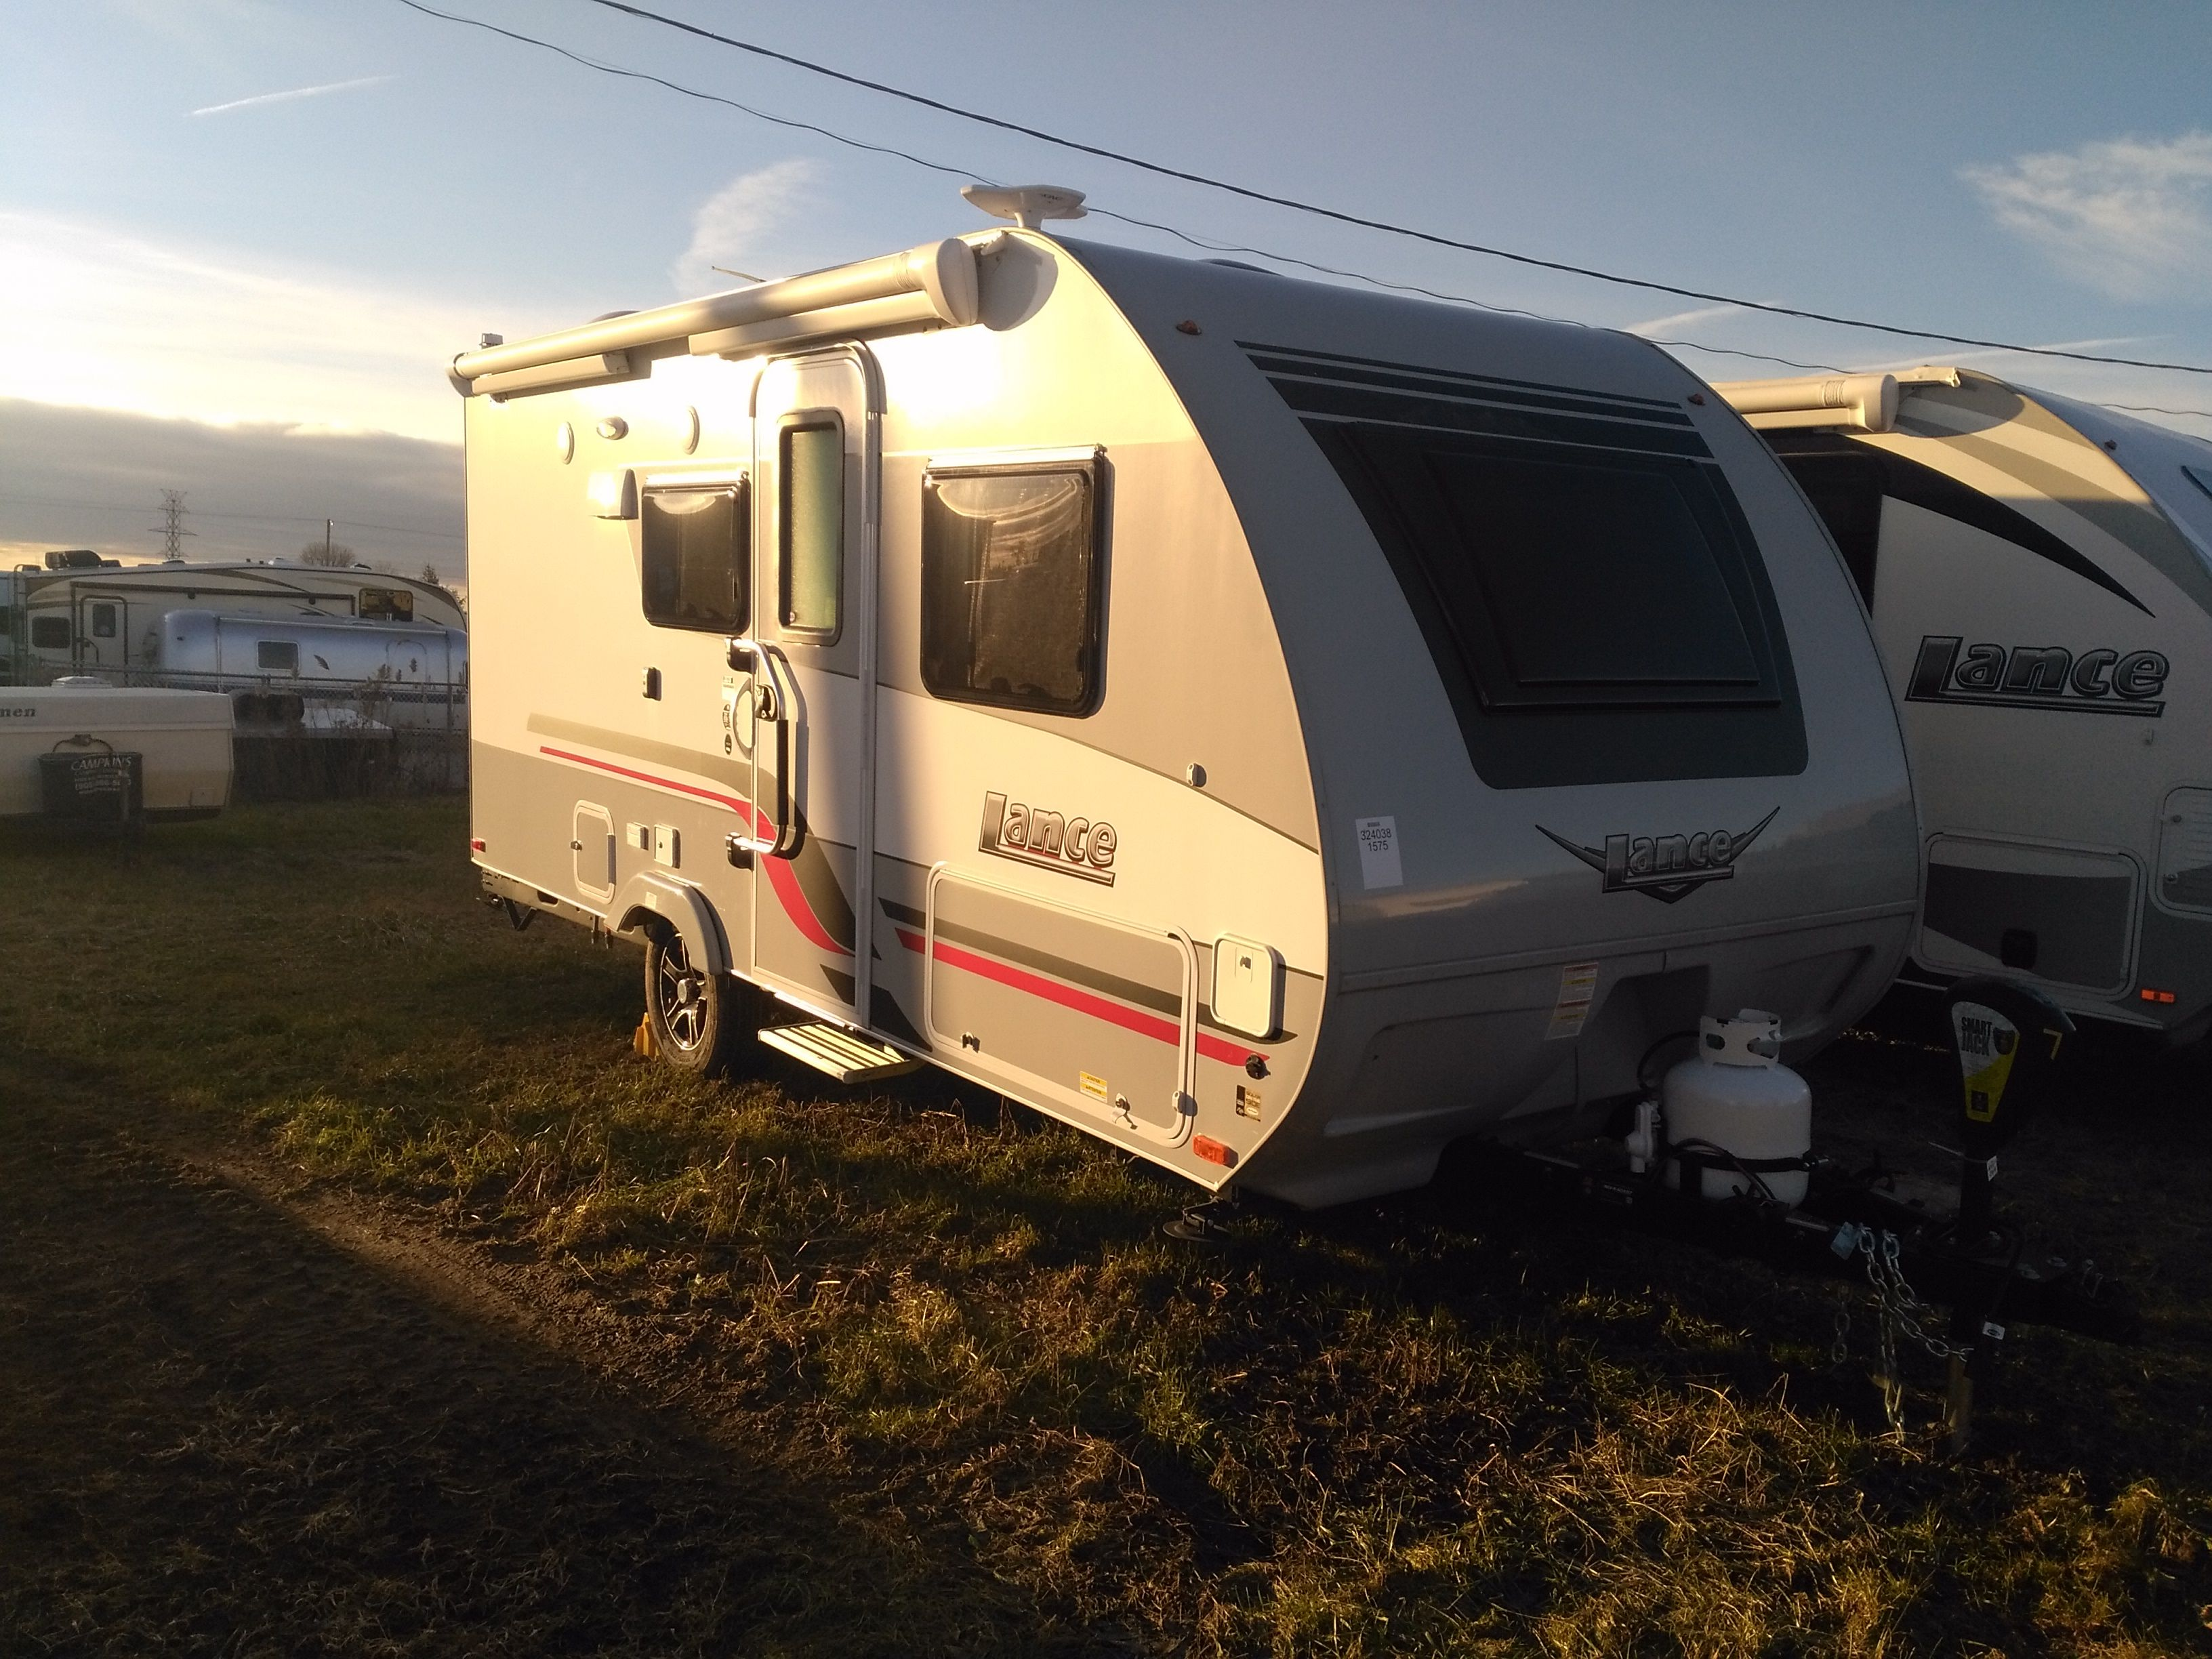 Lance Travel Trailers - Airstreams | Campers | Can-Am RV ...